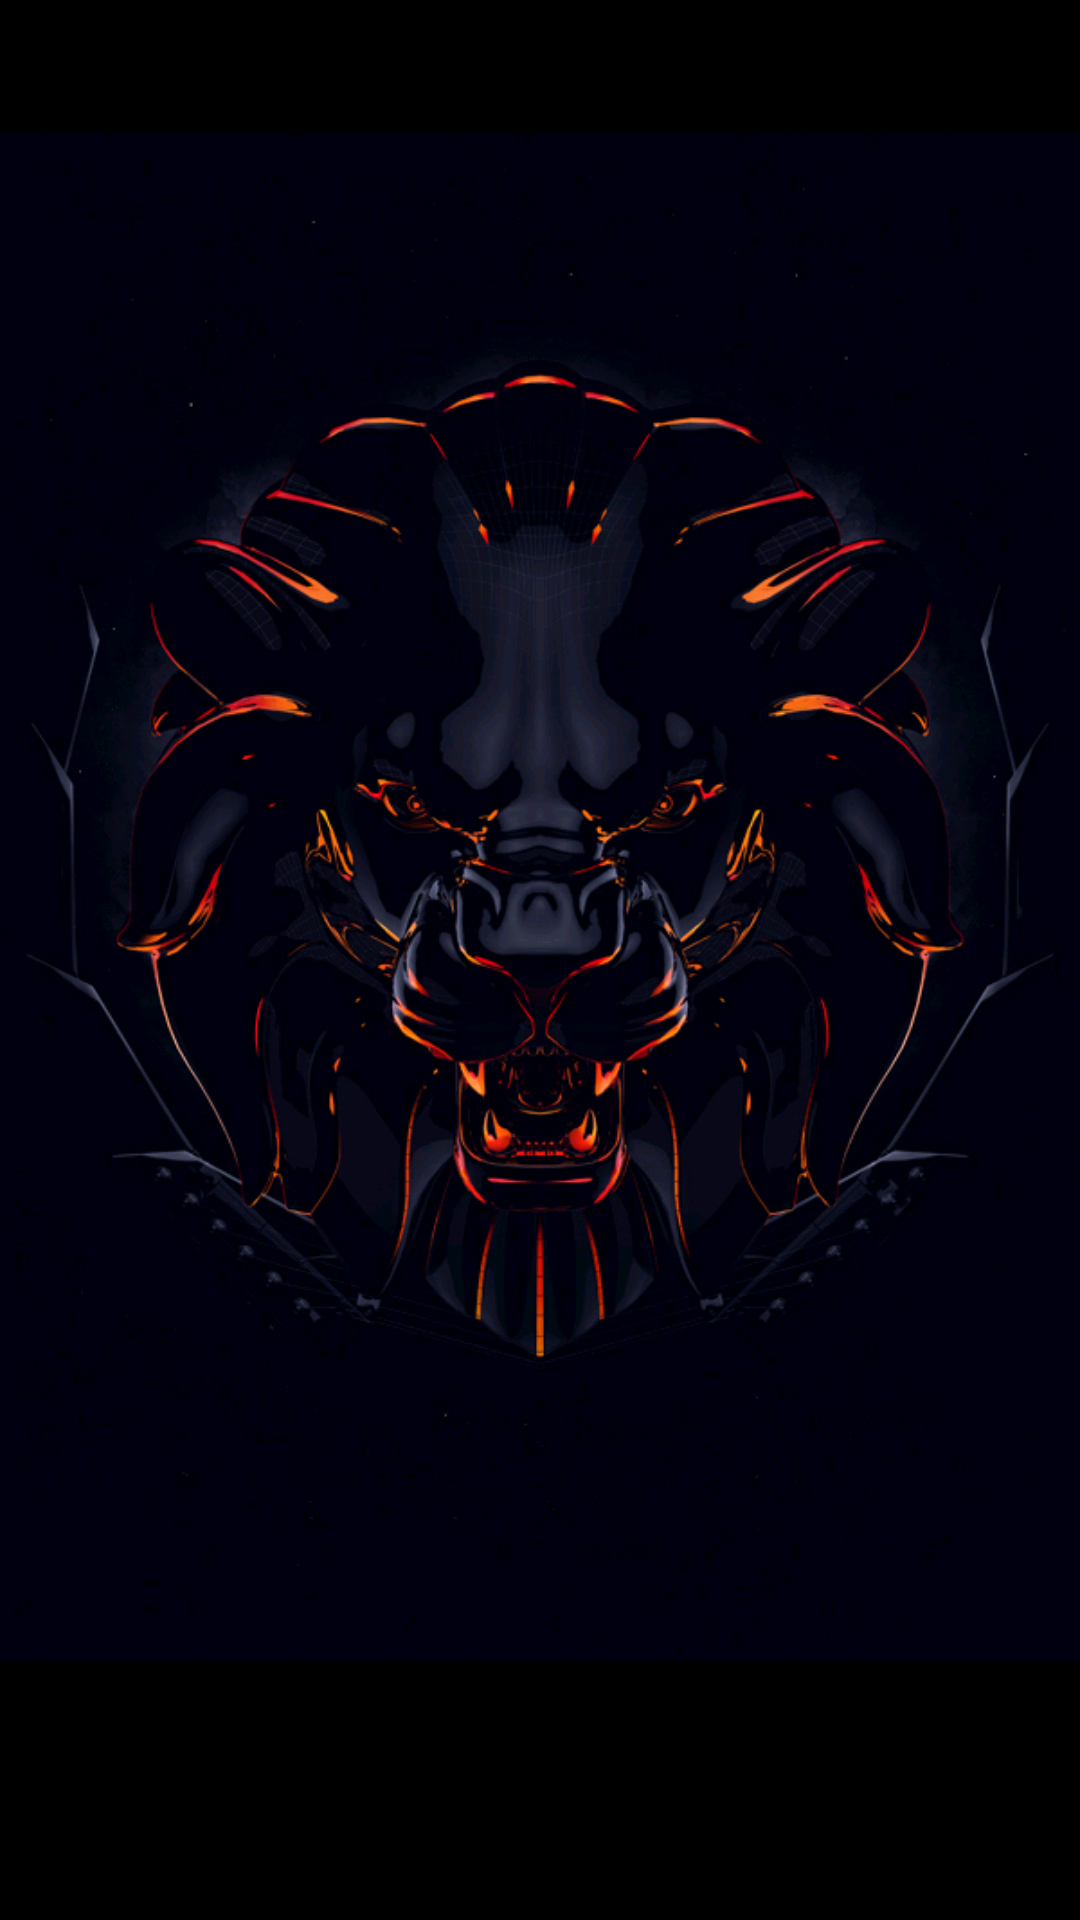 I Share You This Animated Lions Head Picture As One Of The Coolest Badass Wallpapers For Android Phones This Wallpaper Is The  Of All  Badass